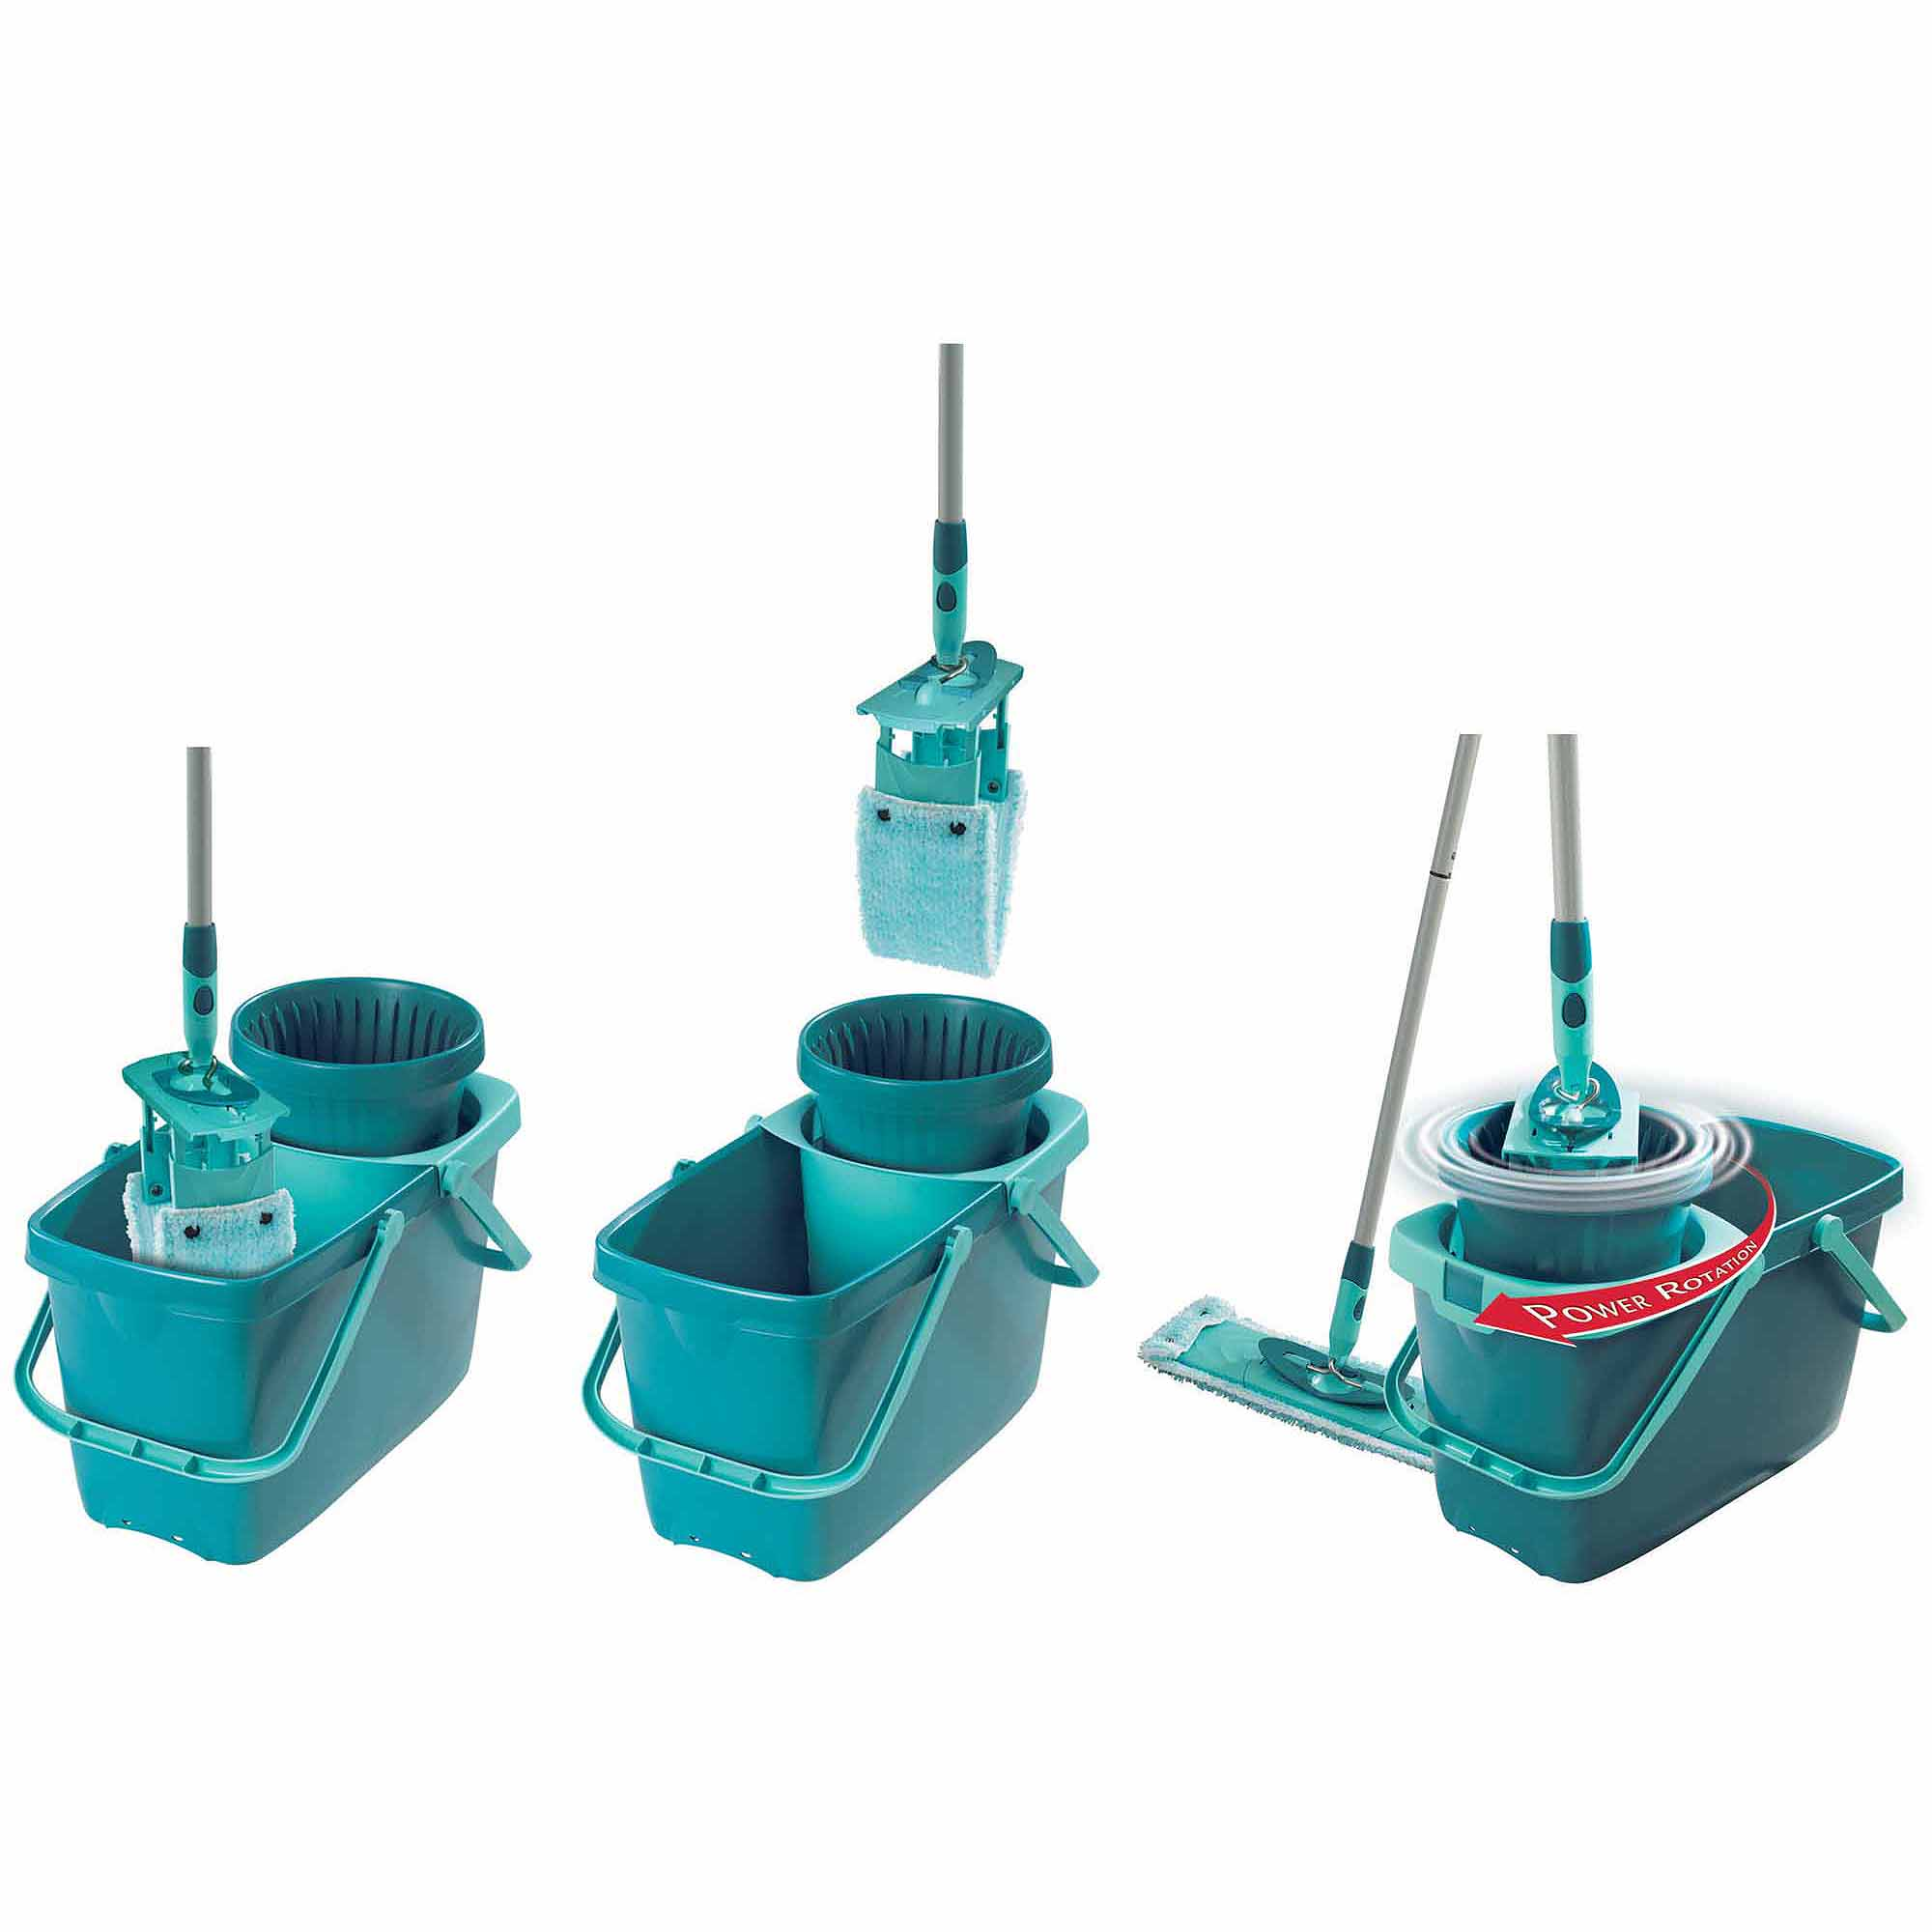 Leifheit Clean Twist XL Rectangle Mop/Sweeper Set with Mop and Spin Bucket, Turquoise